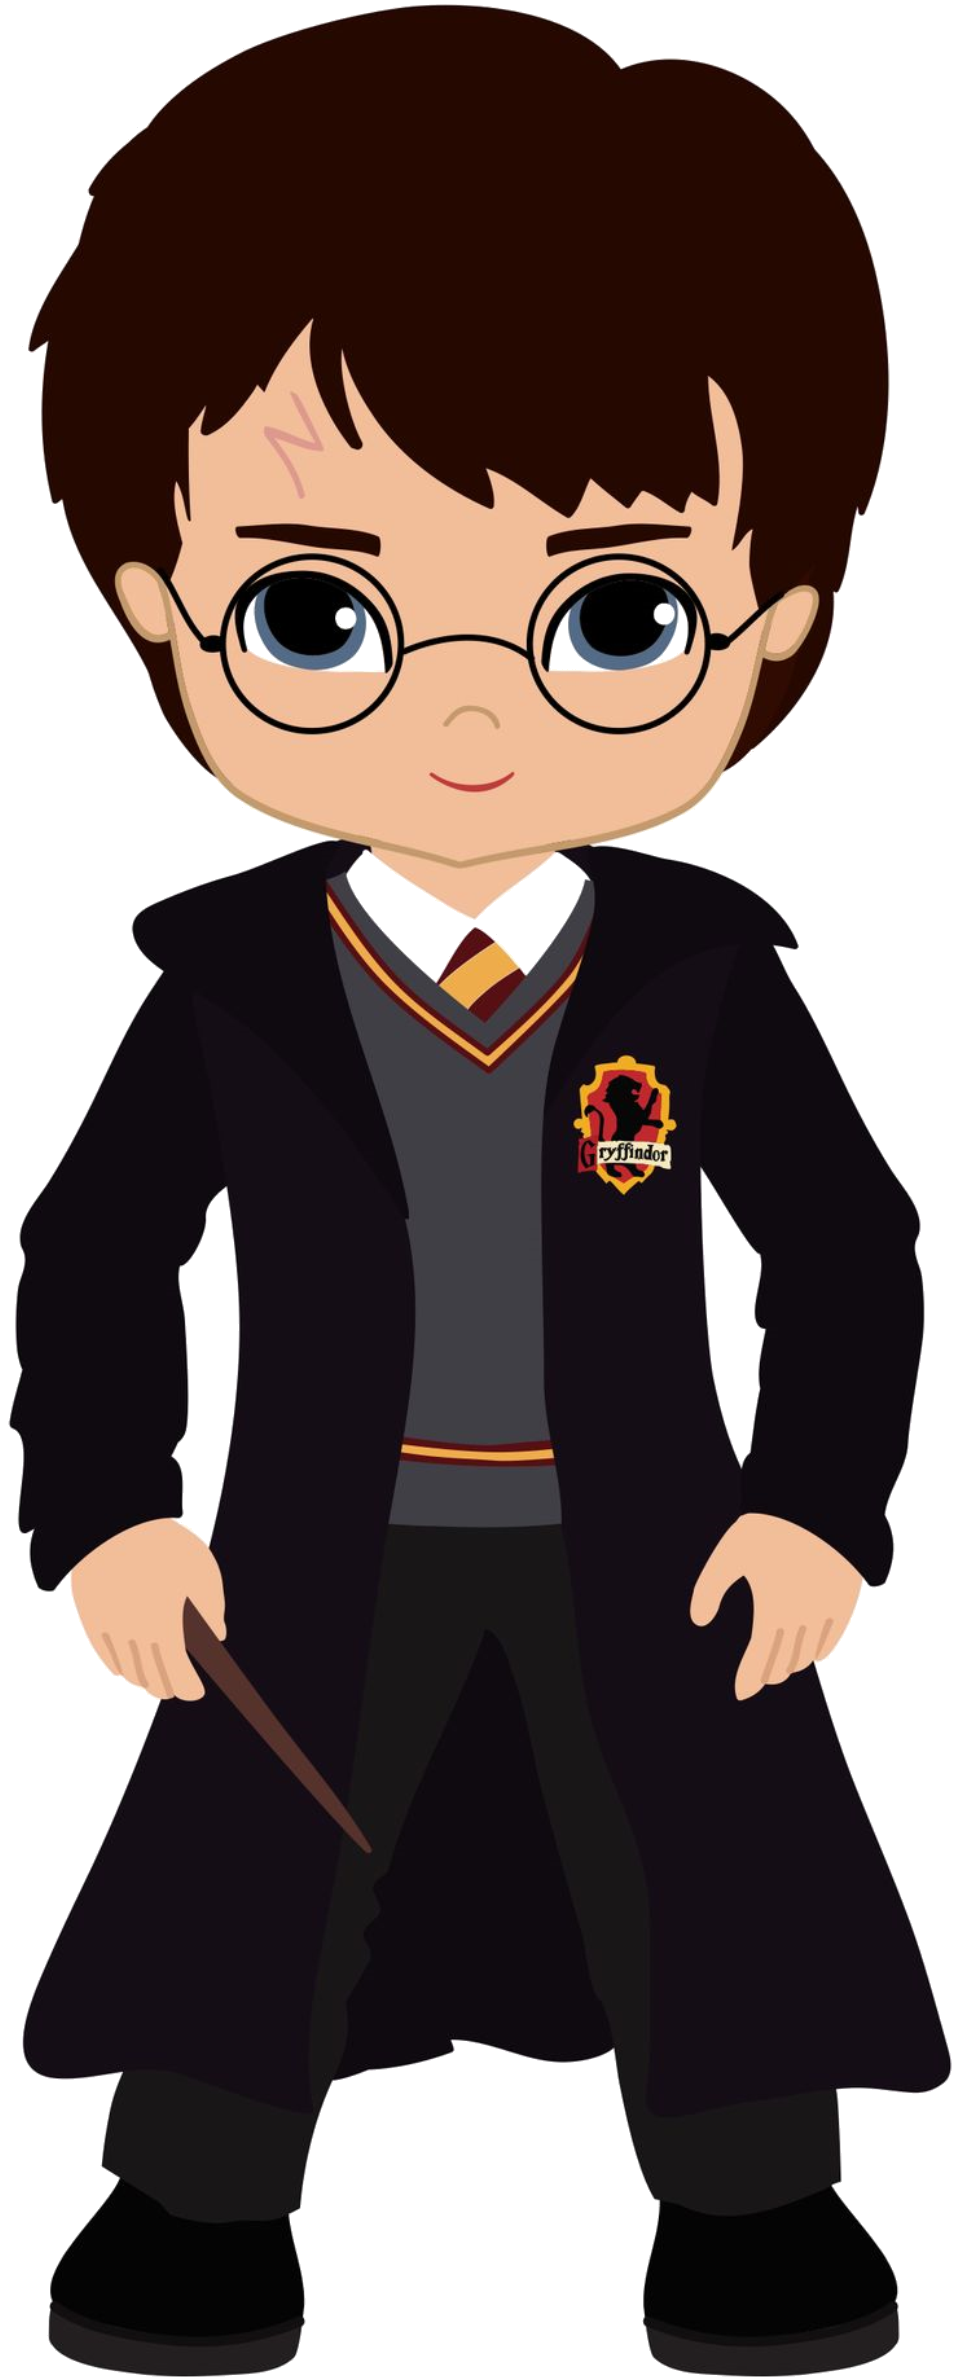 Harry potter money clipart picture download Our printable Harry Potter treasure hunt game will add a magical ... picture download